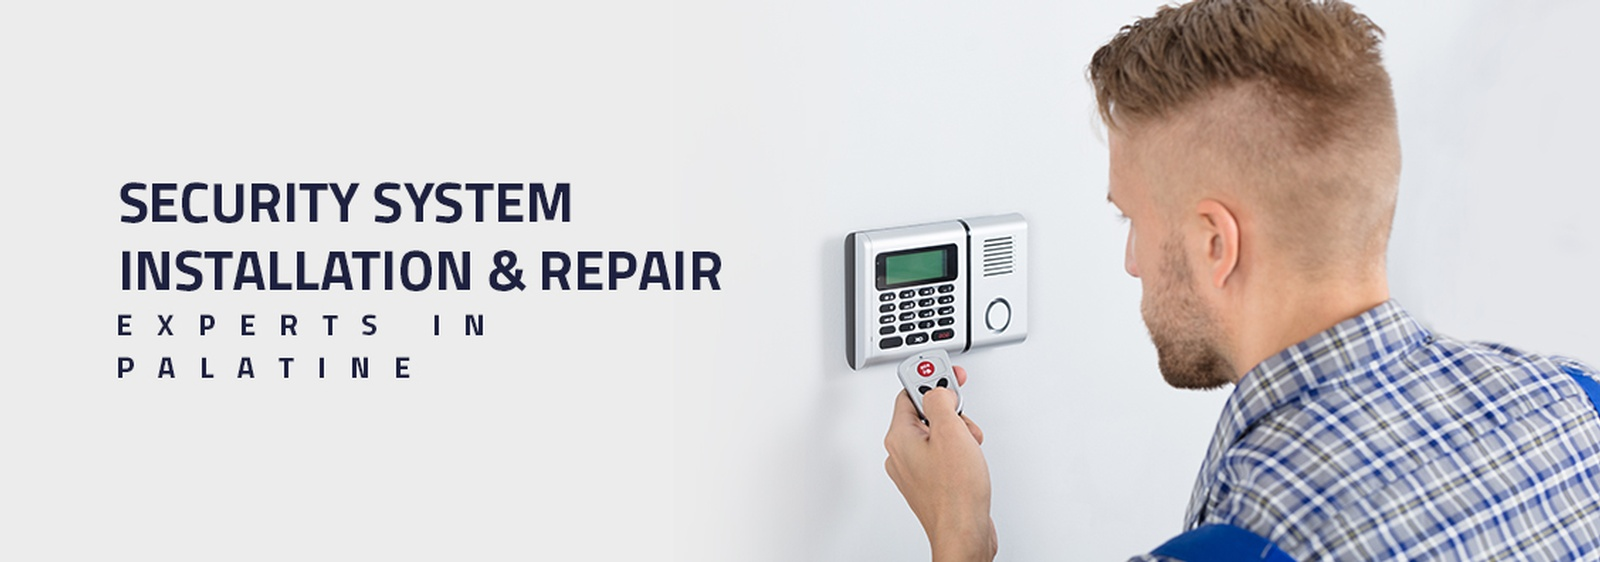 Security System Installation & Repair Experts in Palatine